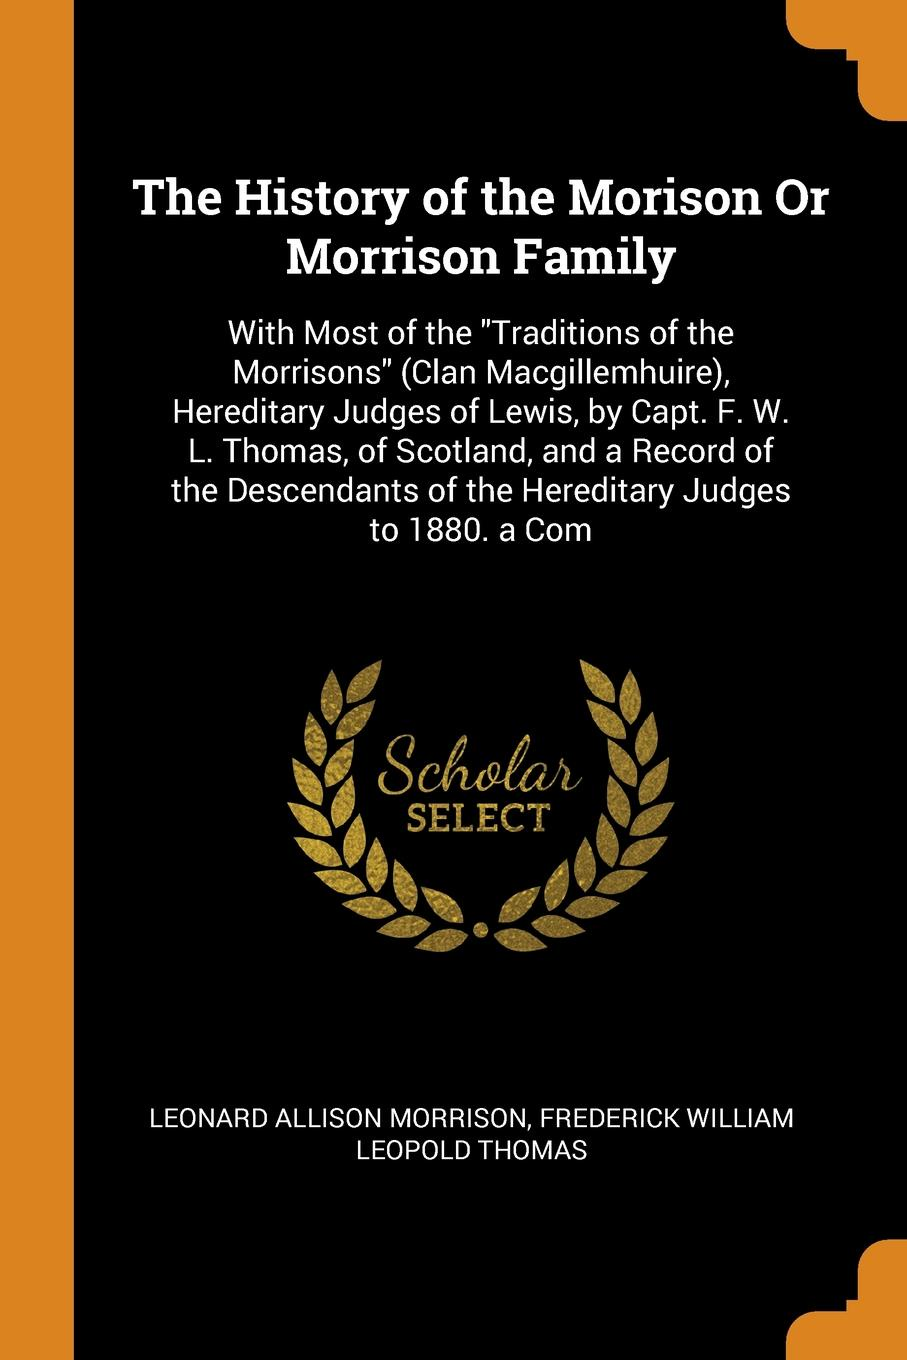 Leonard Allison Morrison, Frederick William Leopold Thomas The History of the Morison Or Morrison Family. With Most of the Traditions of the Morrisons (Clan Macgillemhuire), Hereditary Judges of Lewis, by Capt. F. W. L. Thomas, of Scotland, and a Record of the Descendants of the Hereditary Judges to 188... thomas j jenkins the judges of faith